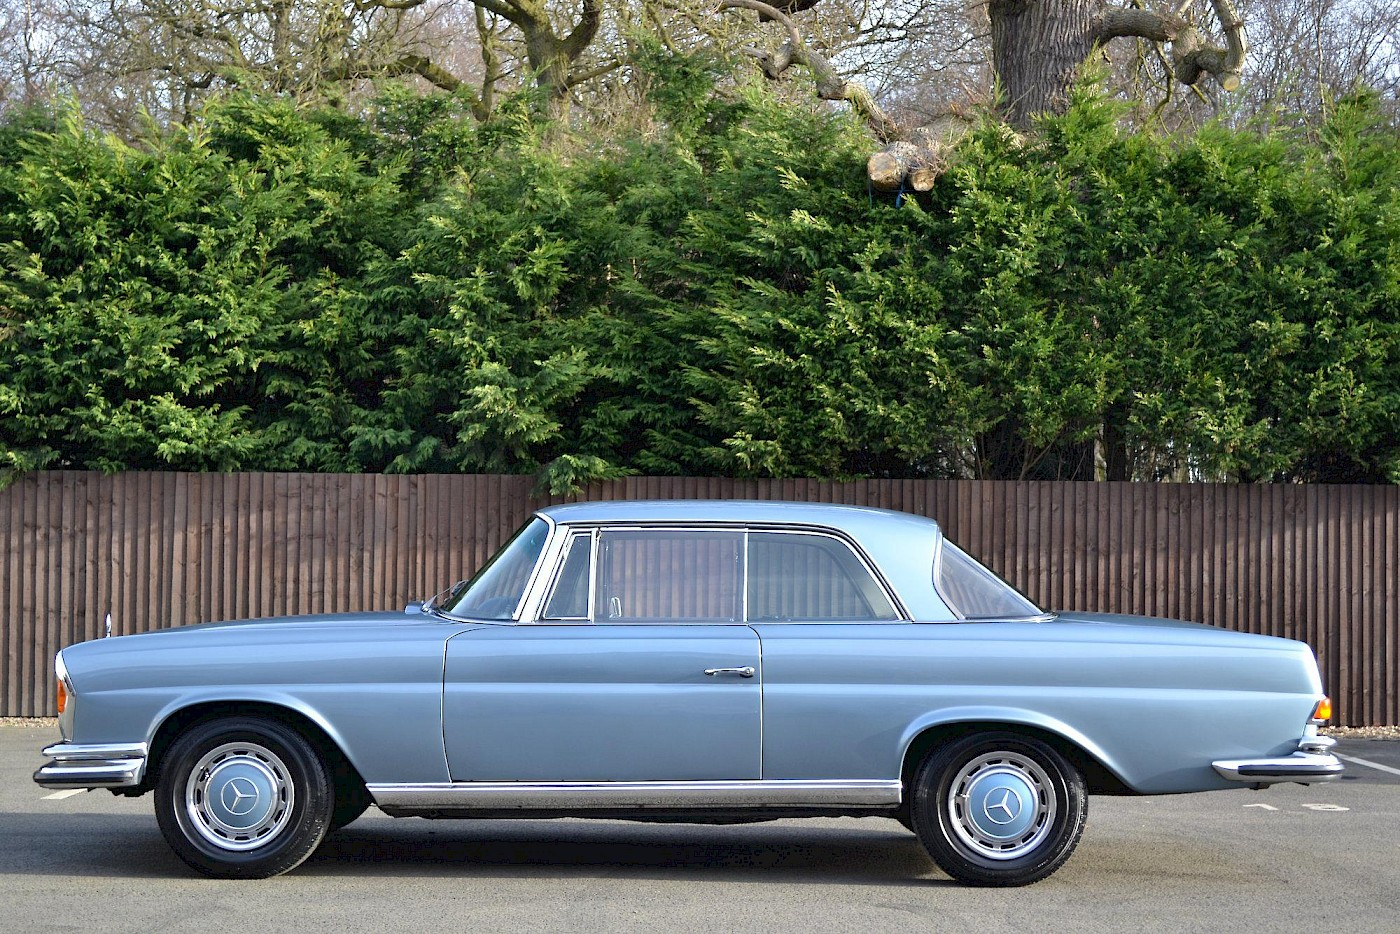 1971 RHD Mercedes-Benz 280 SE 3.5 V8 Coupe 8